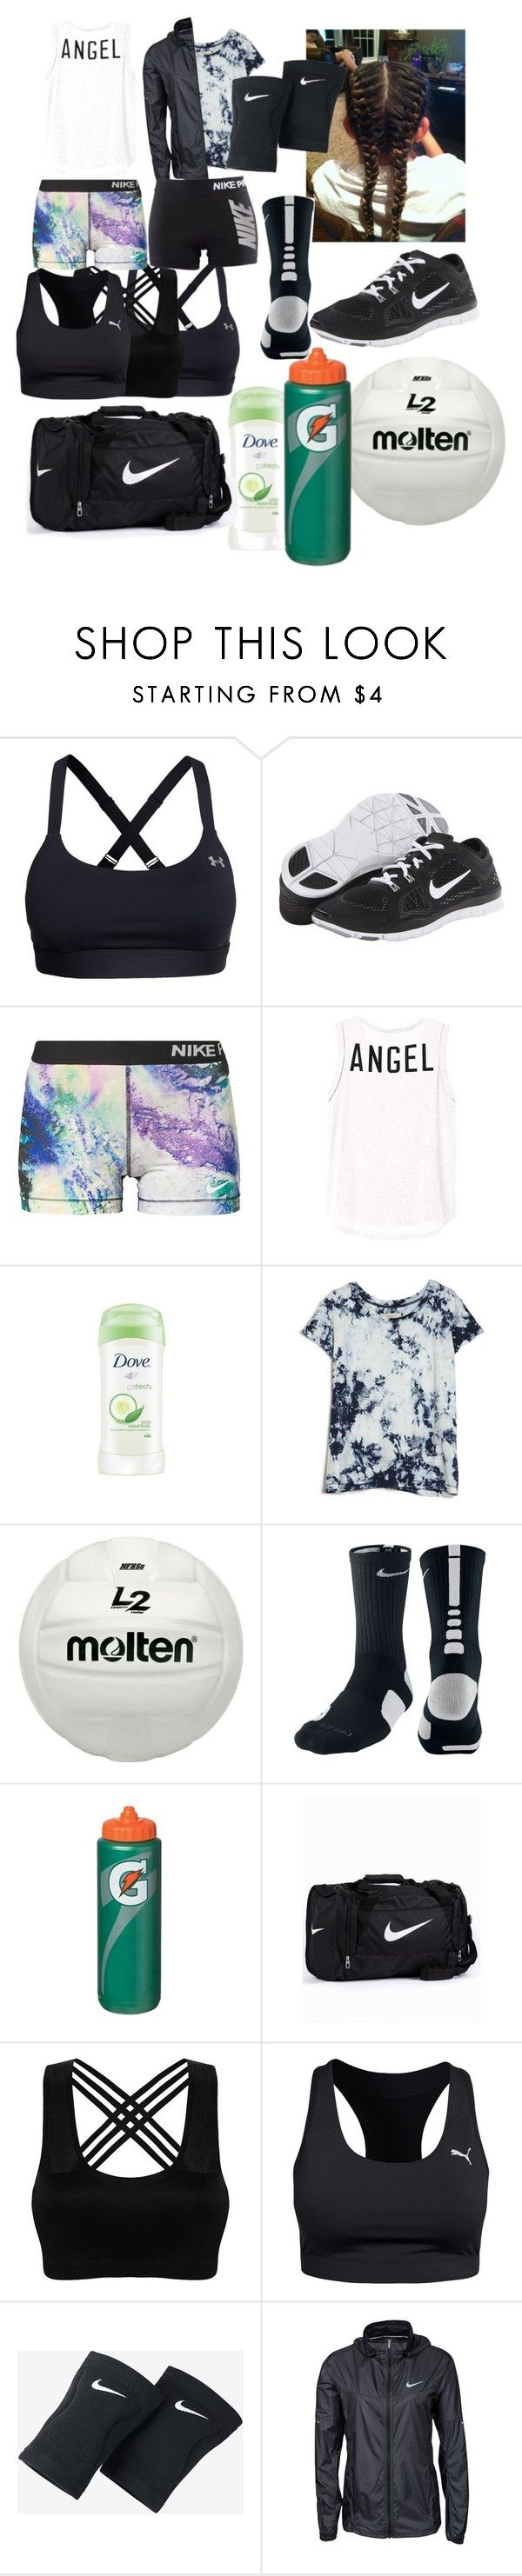 """""""Volleyball practice"""" by scatteredstripes ❤ liked on Polyvore featuring beauty, Under Armour, NIKE, Dove, Current/Elliott and Puma"""